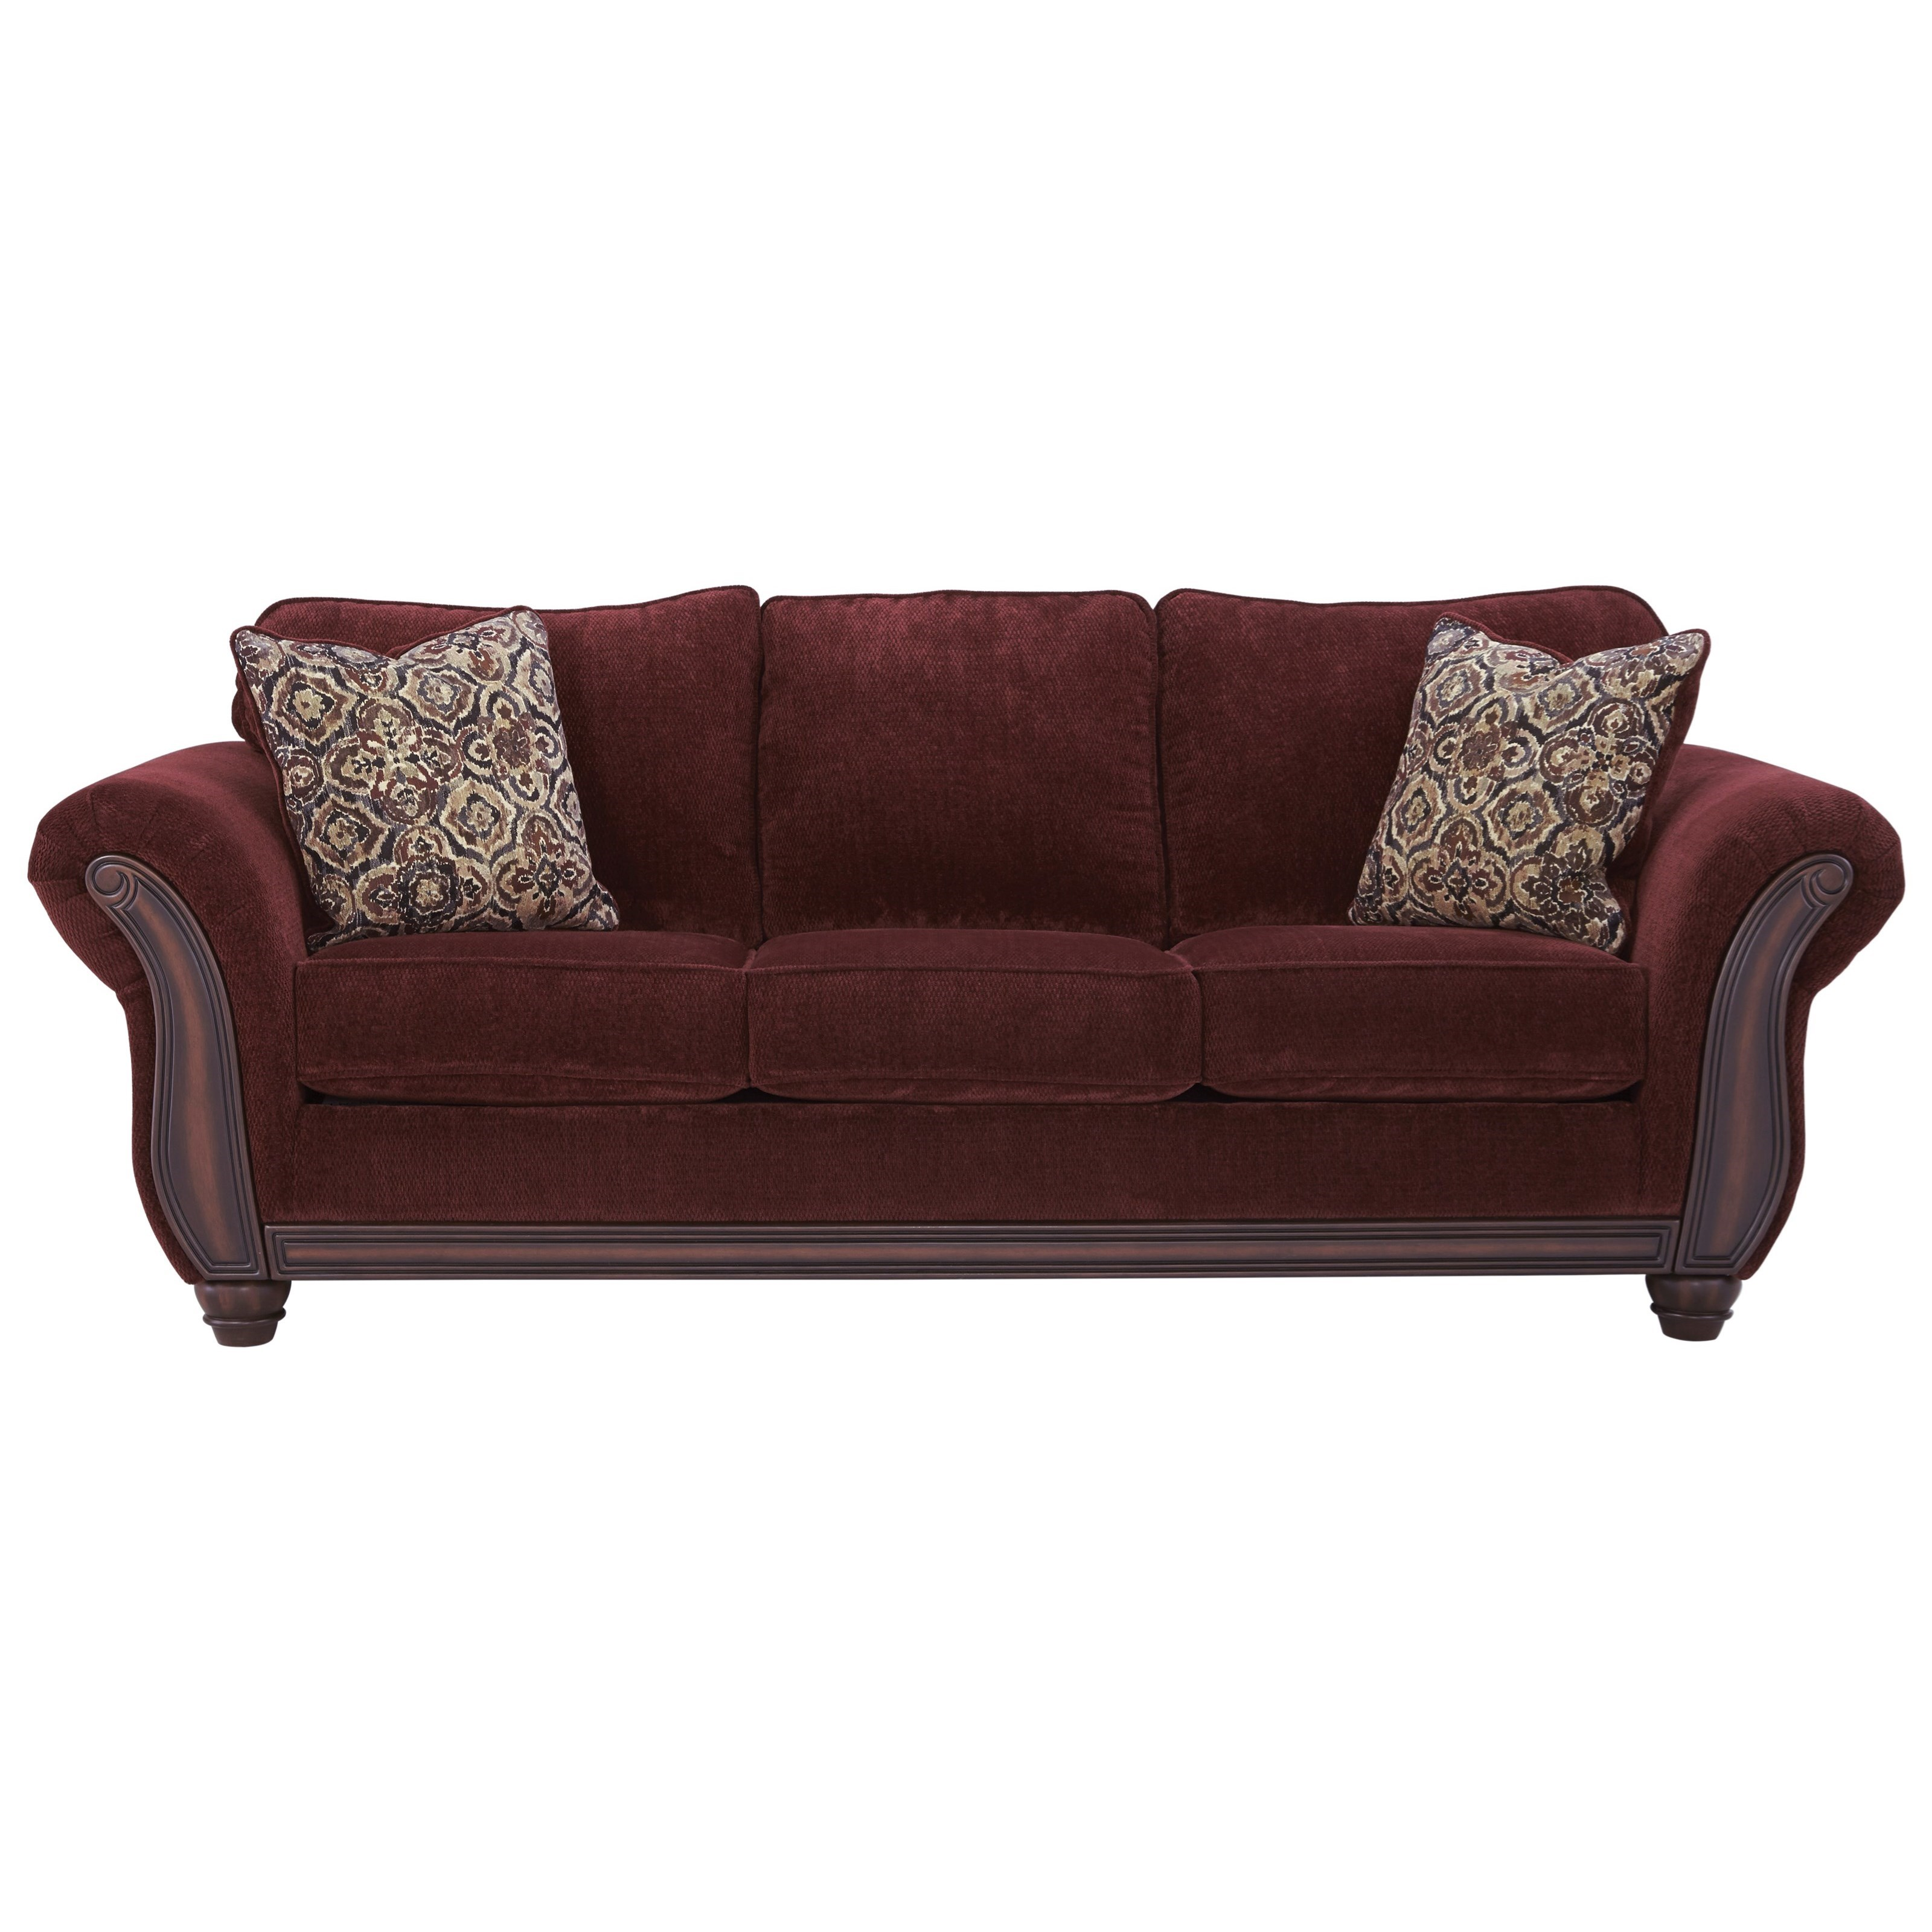 Signature Design by Ashley Chesterbrook Queen Sofa Sleeper - Item Number: 8810239